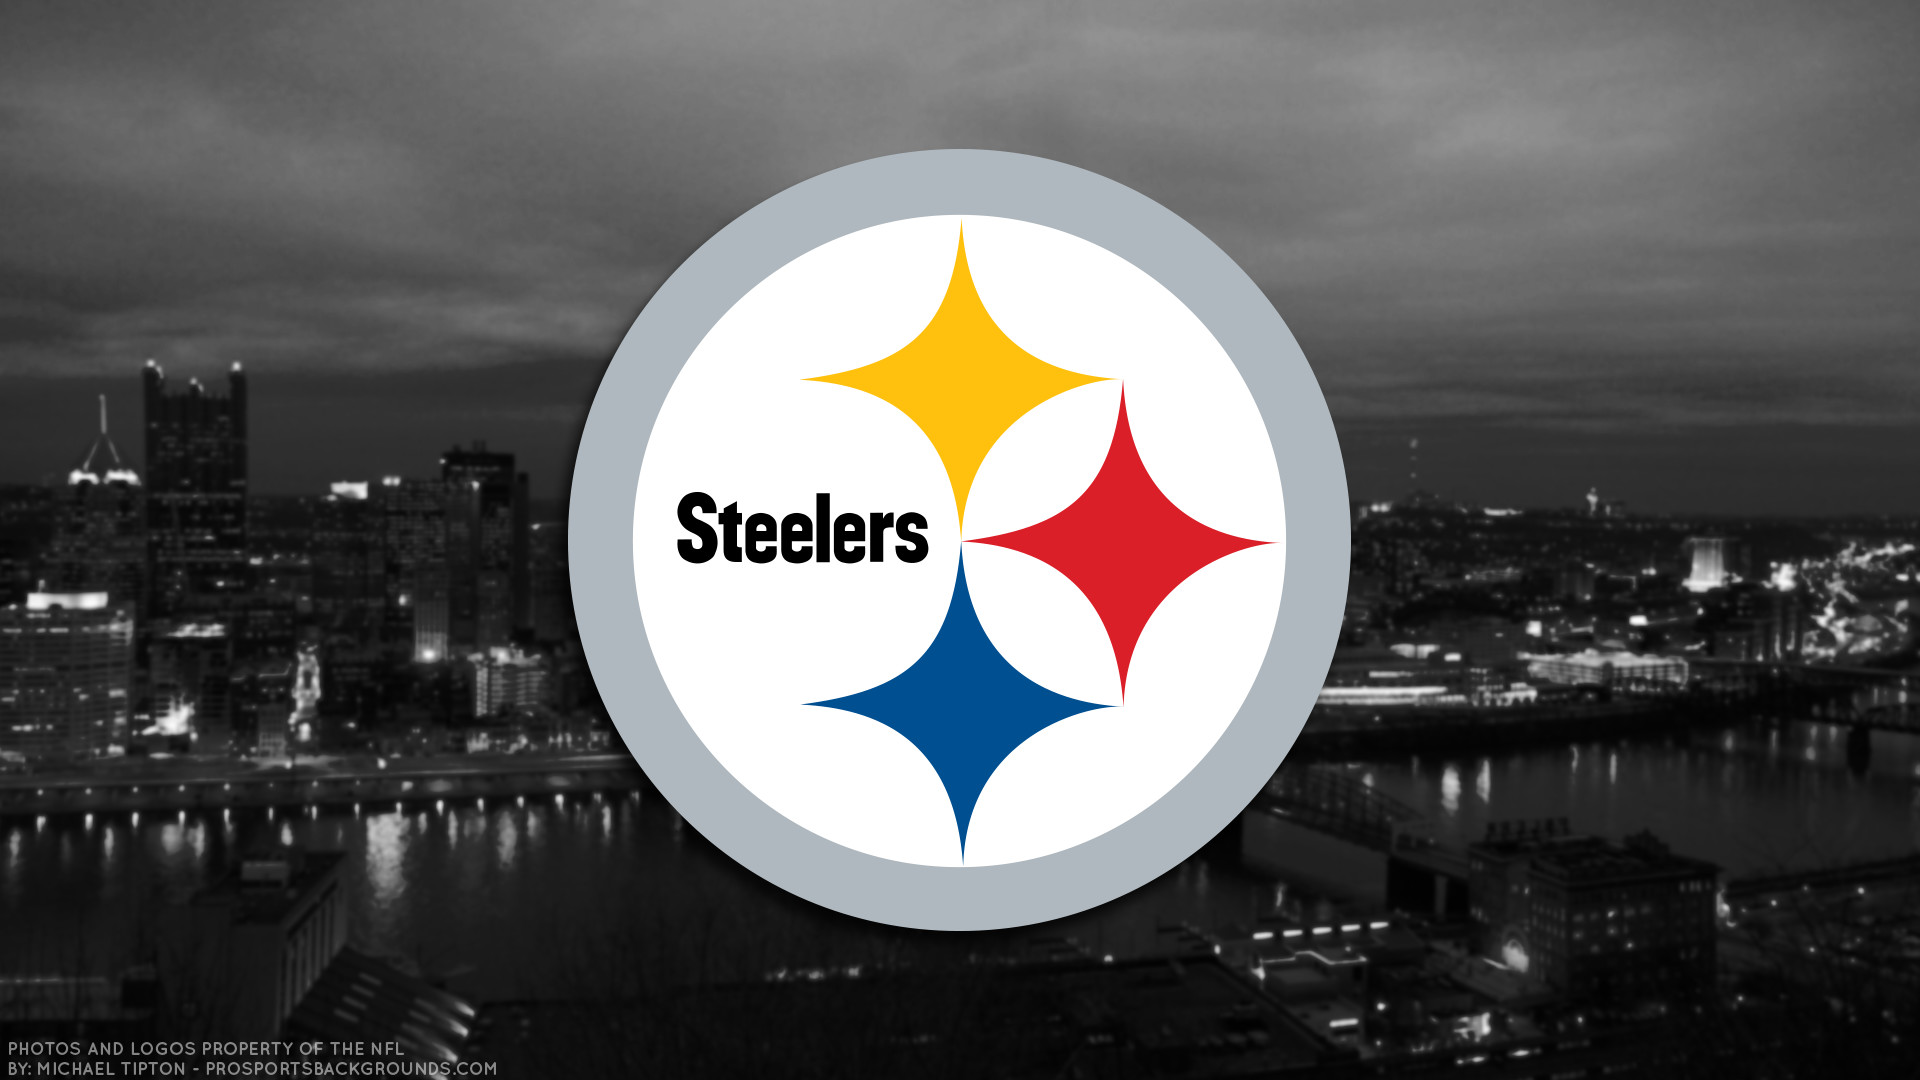 1920x1080 - Steelers Desktop 1